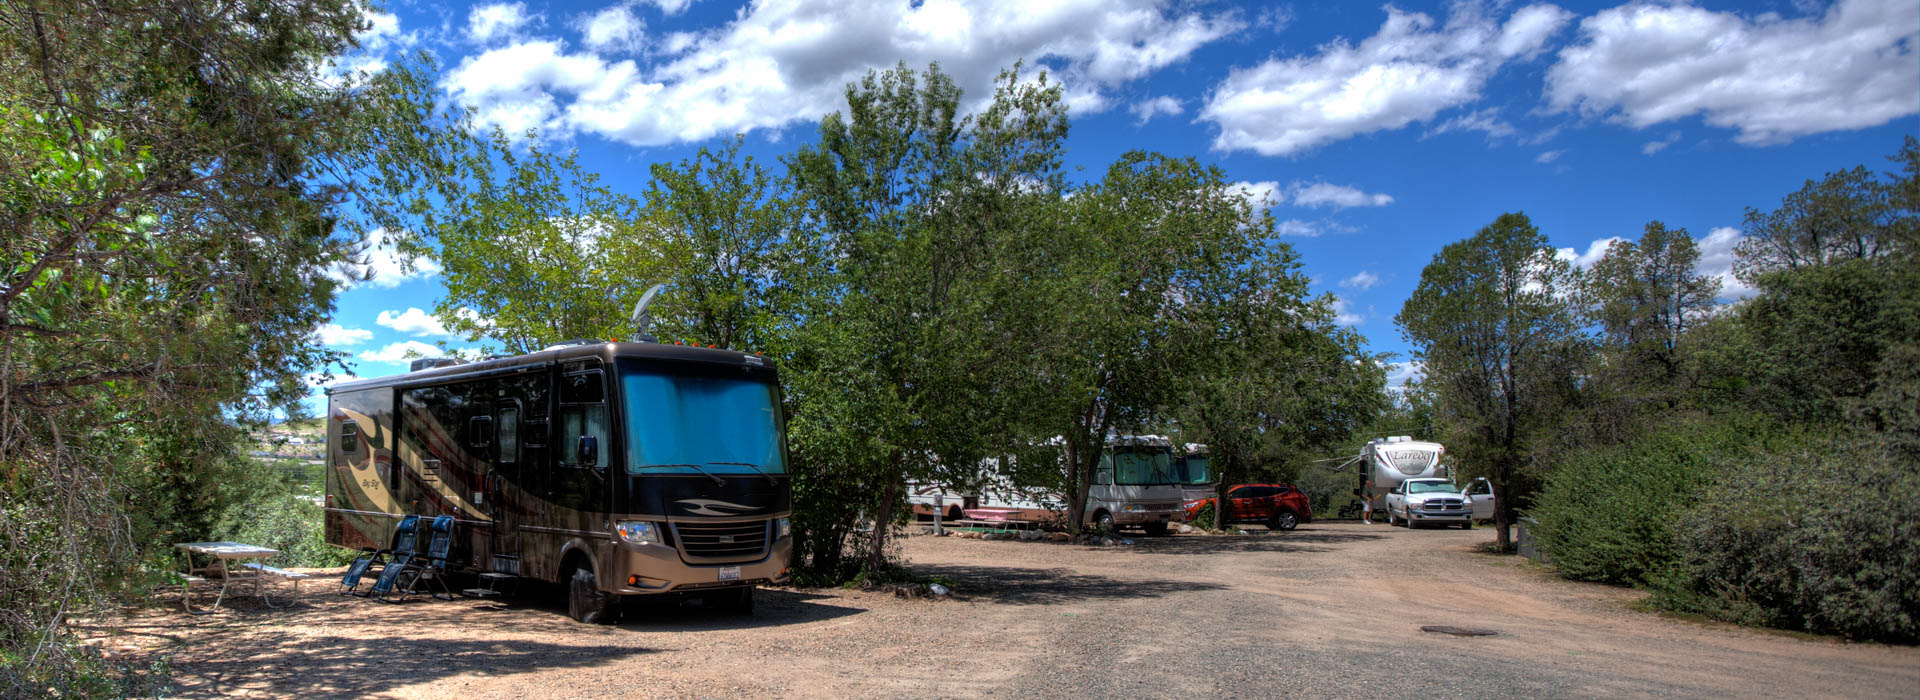 RV Camping Prescott AZ photographer Richard Charpentier